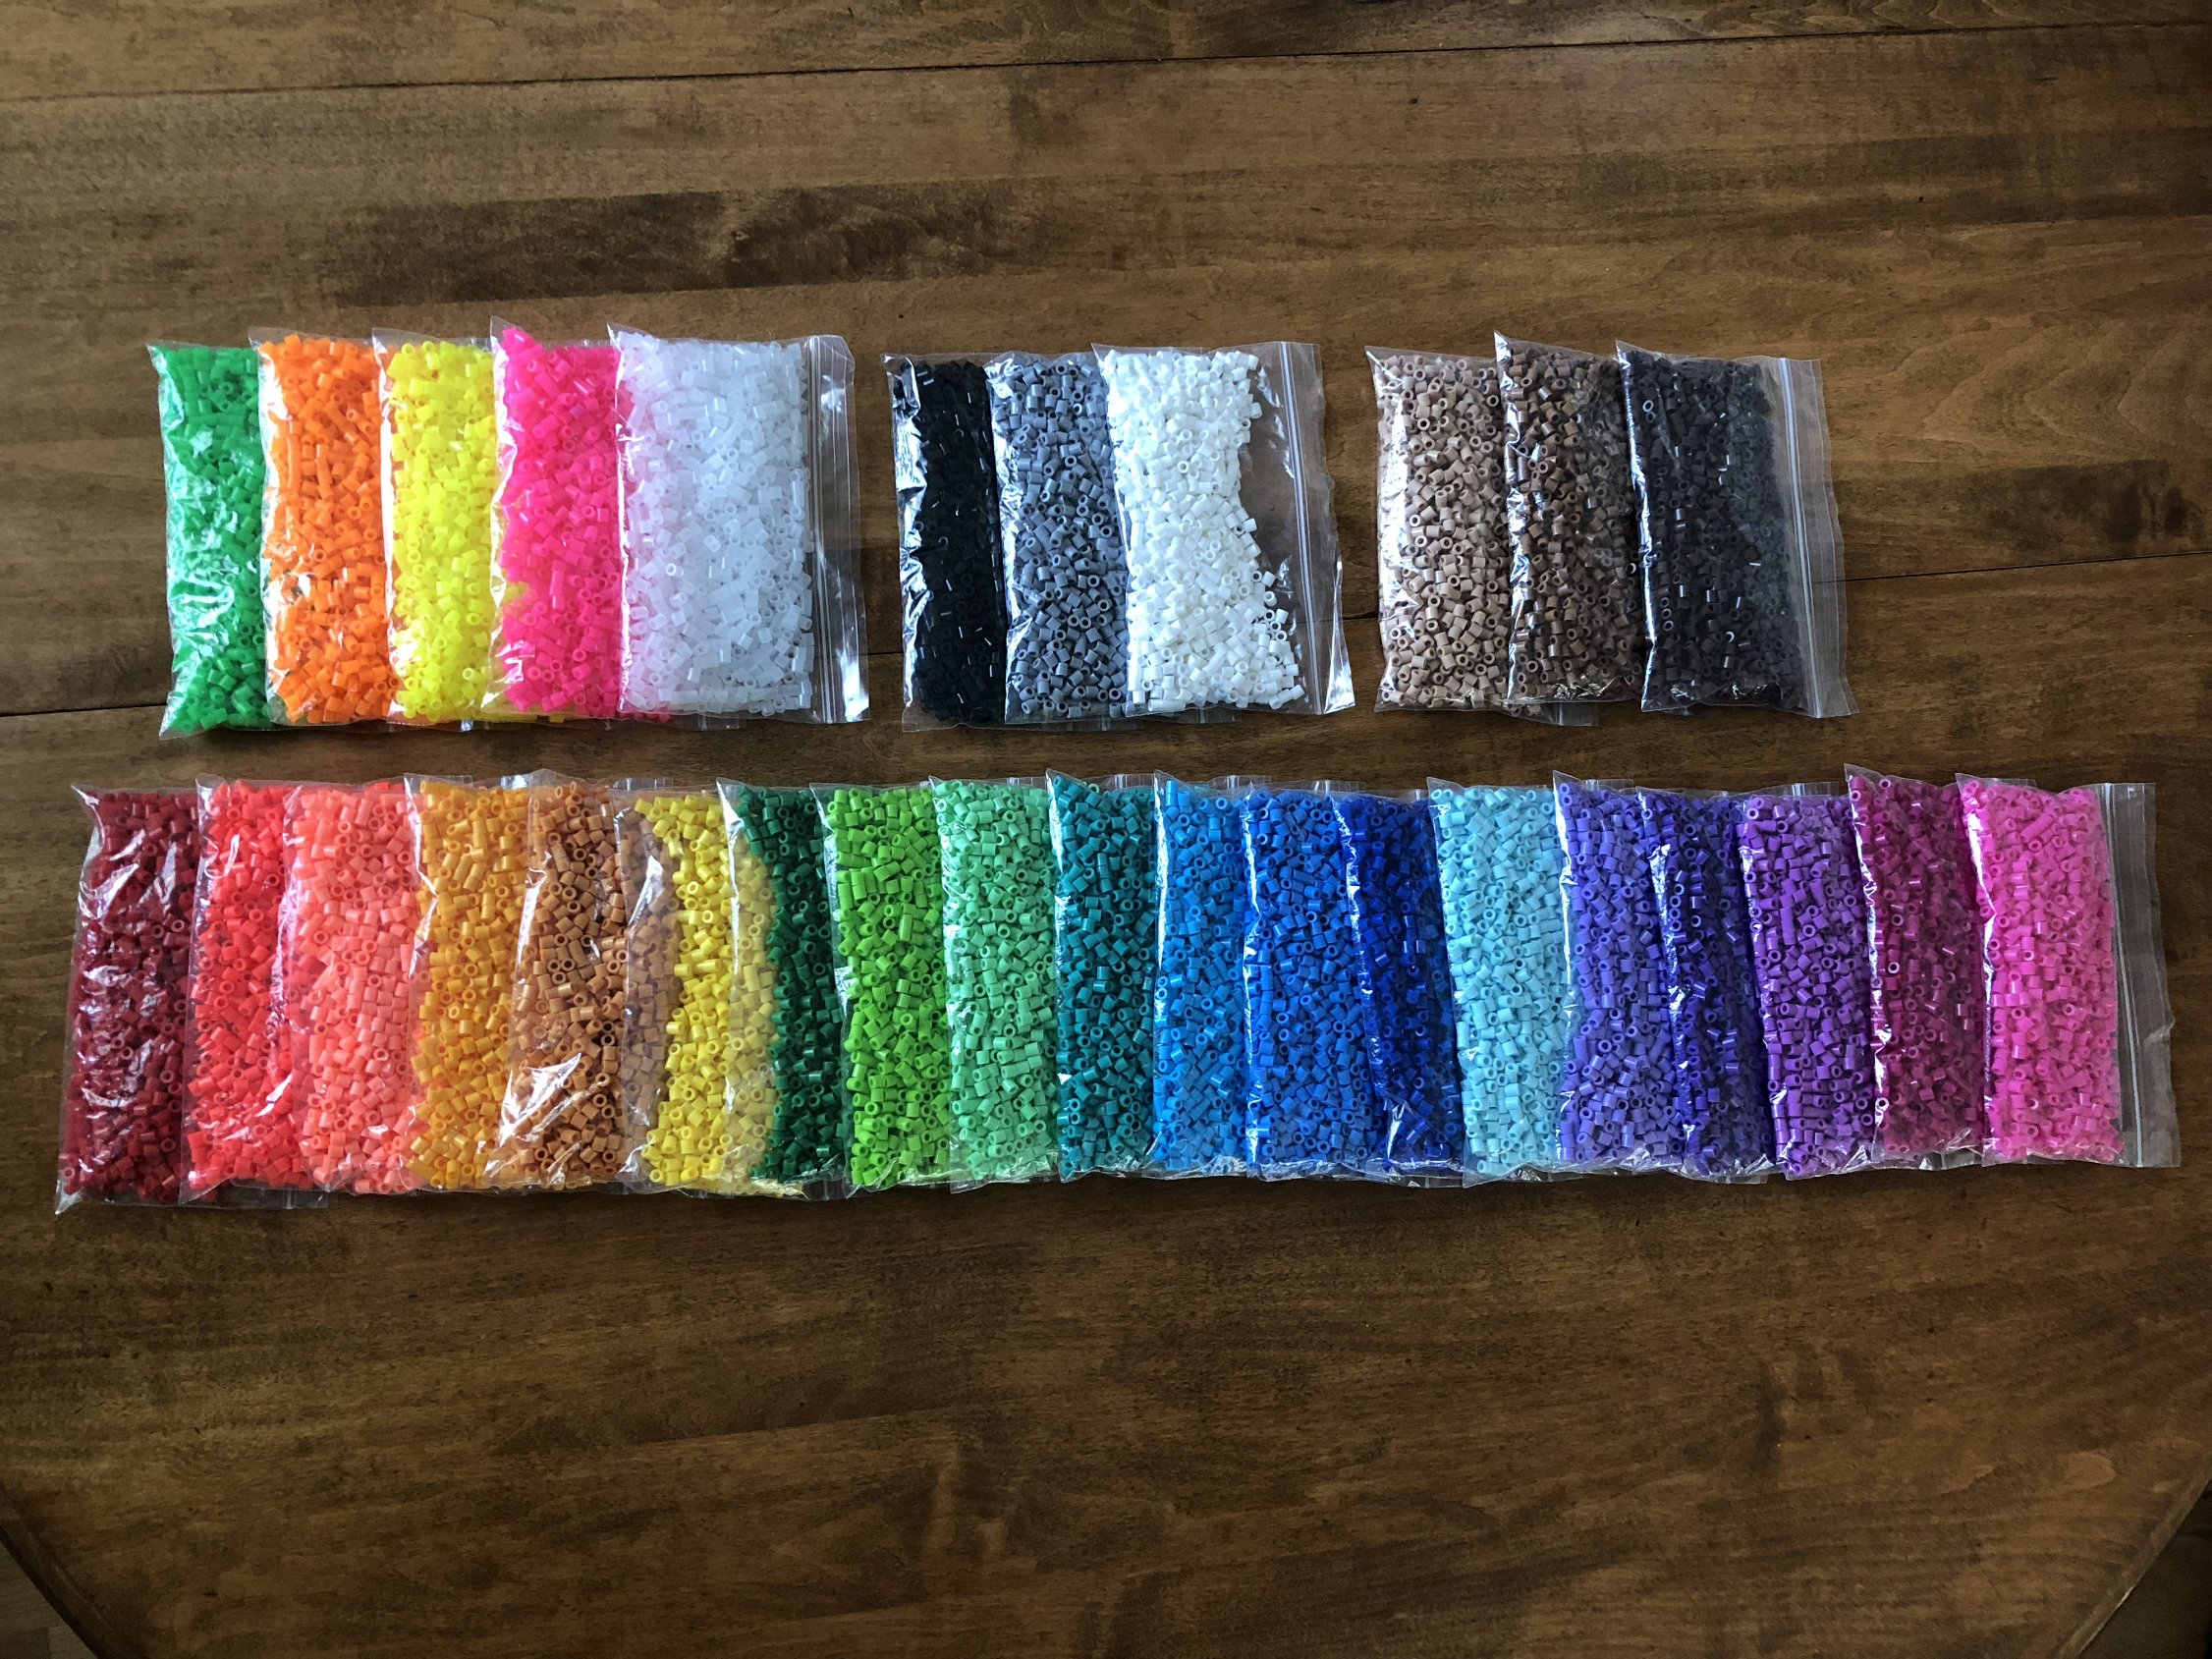 Phidgets Projects: Sorting Coloured Beads